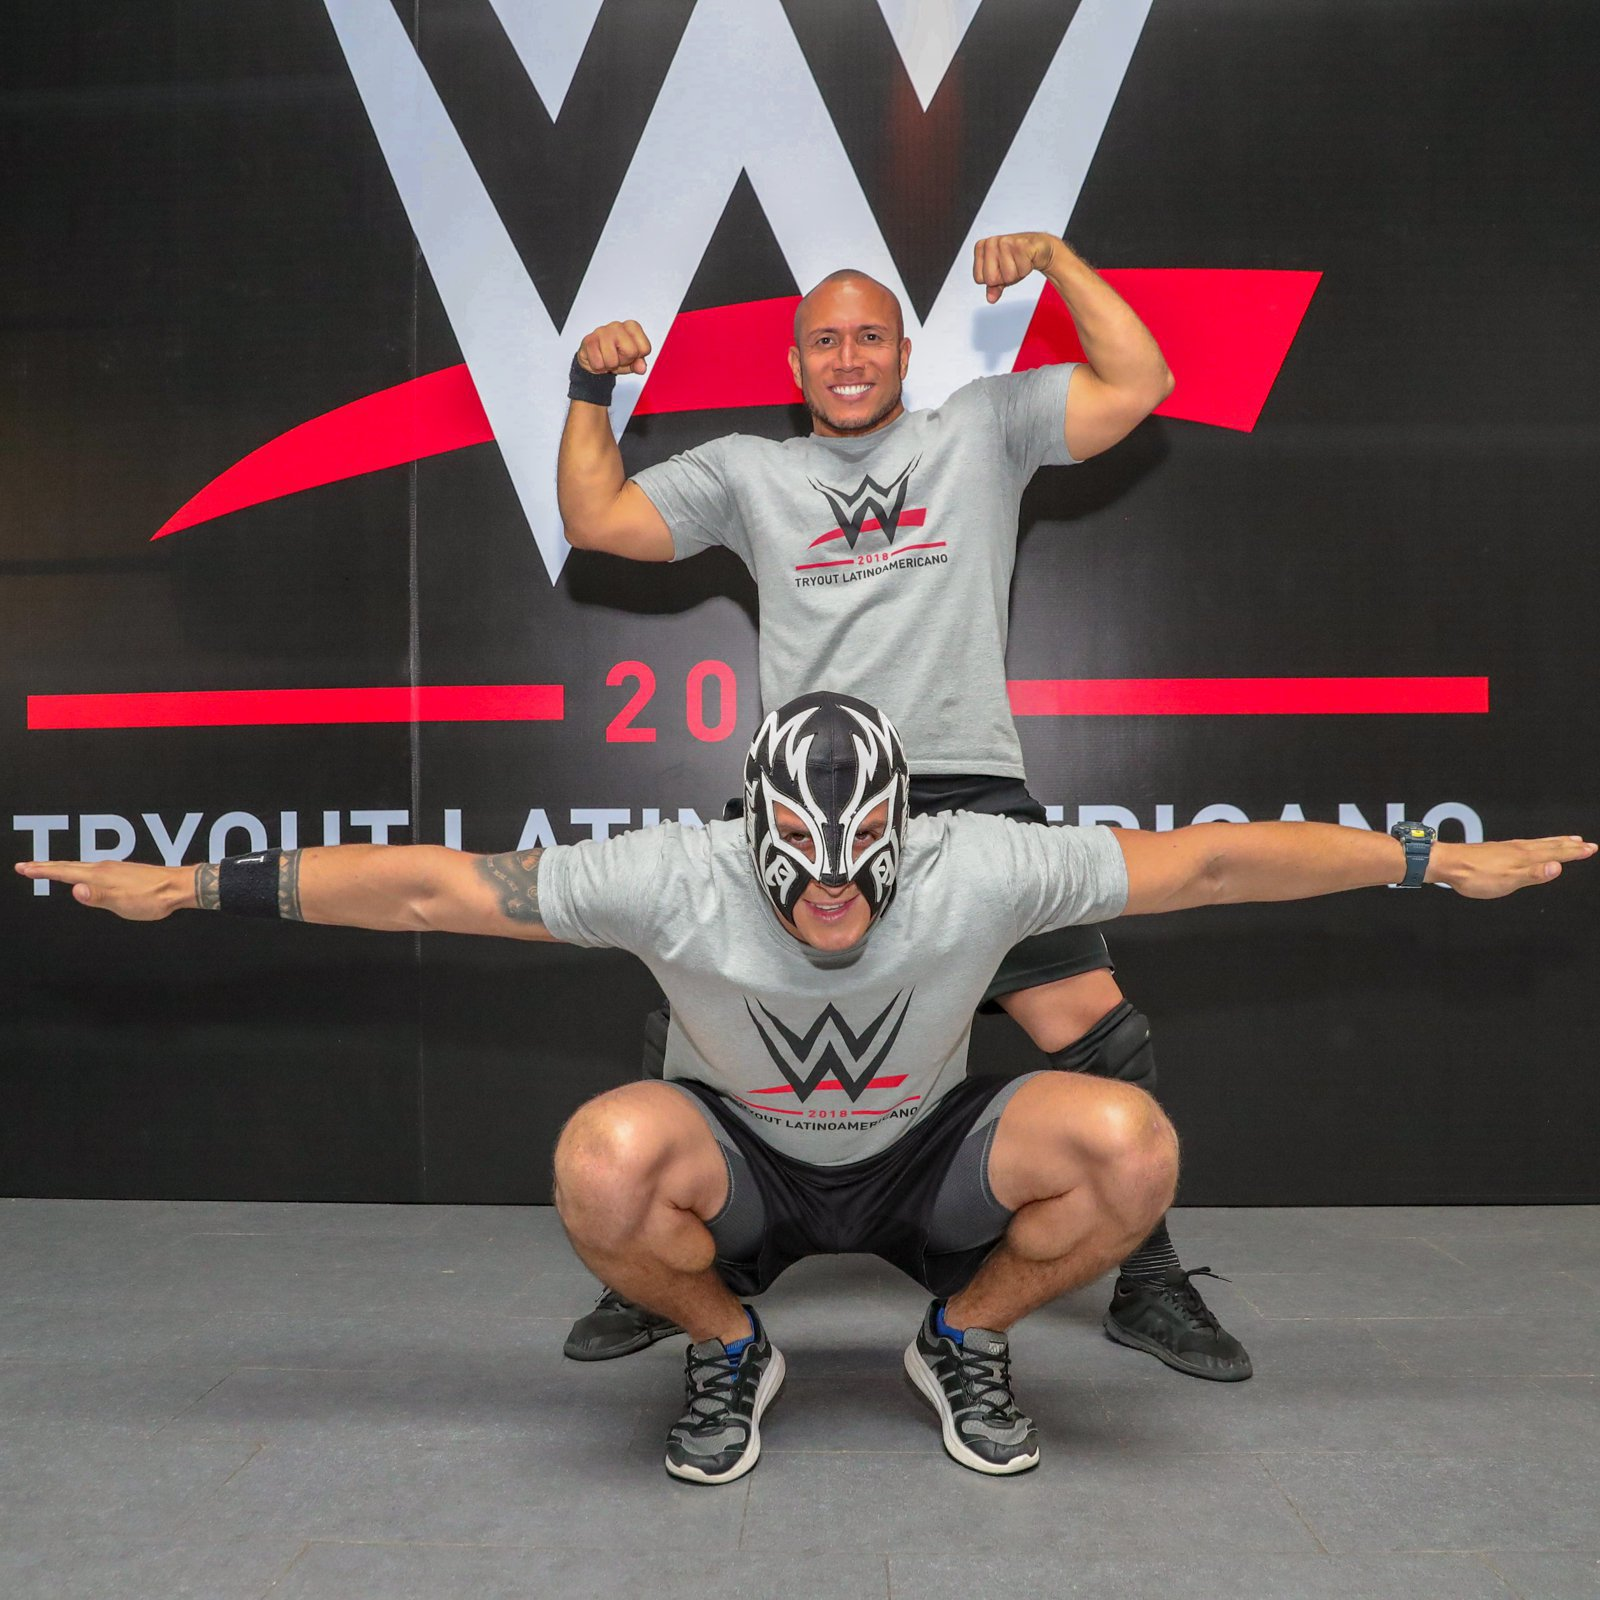 Costa Rica's Sky Drako and Armando Arias (better known by the ring name Ary Bradford) hope to make a lasting impression on WWE scouts.